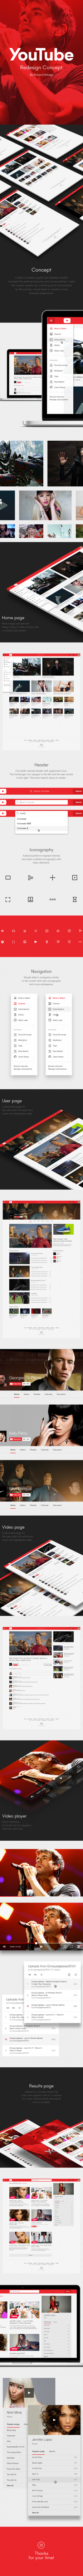 YouTube Redesign Concept on